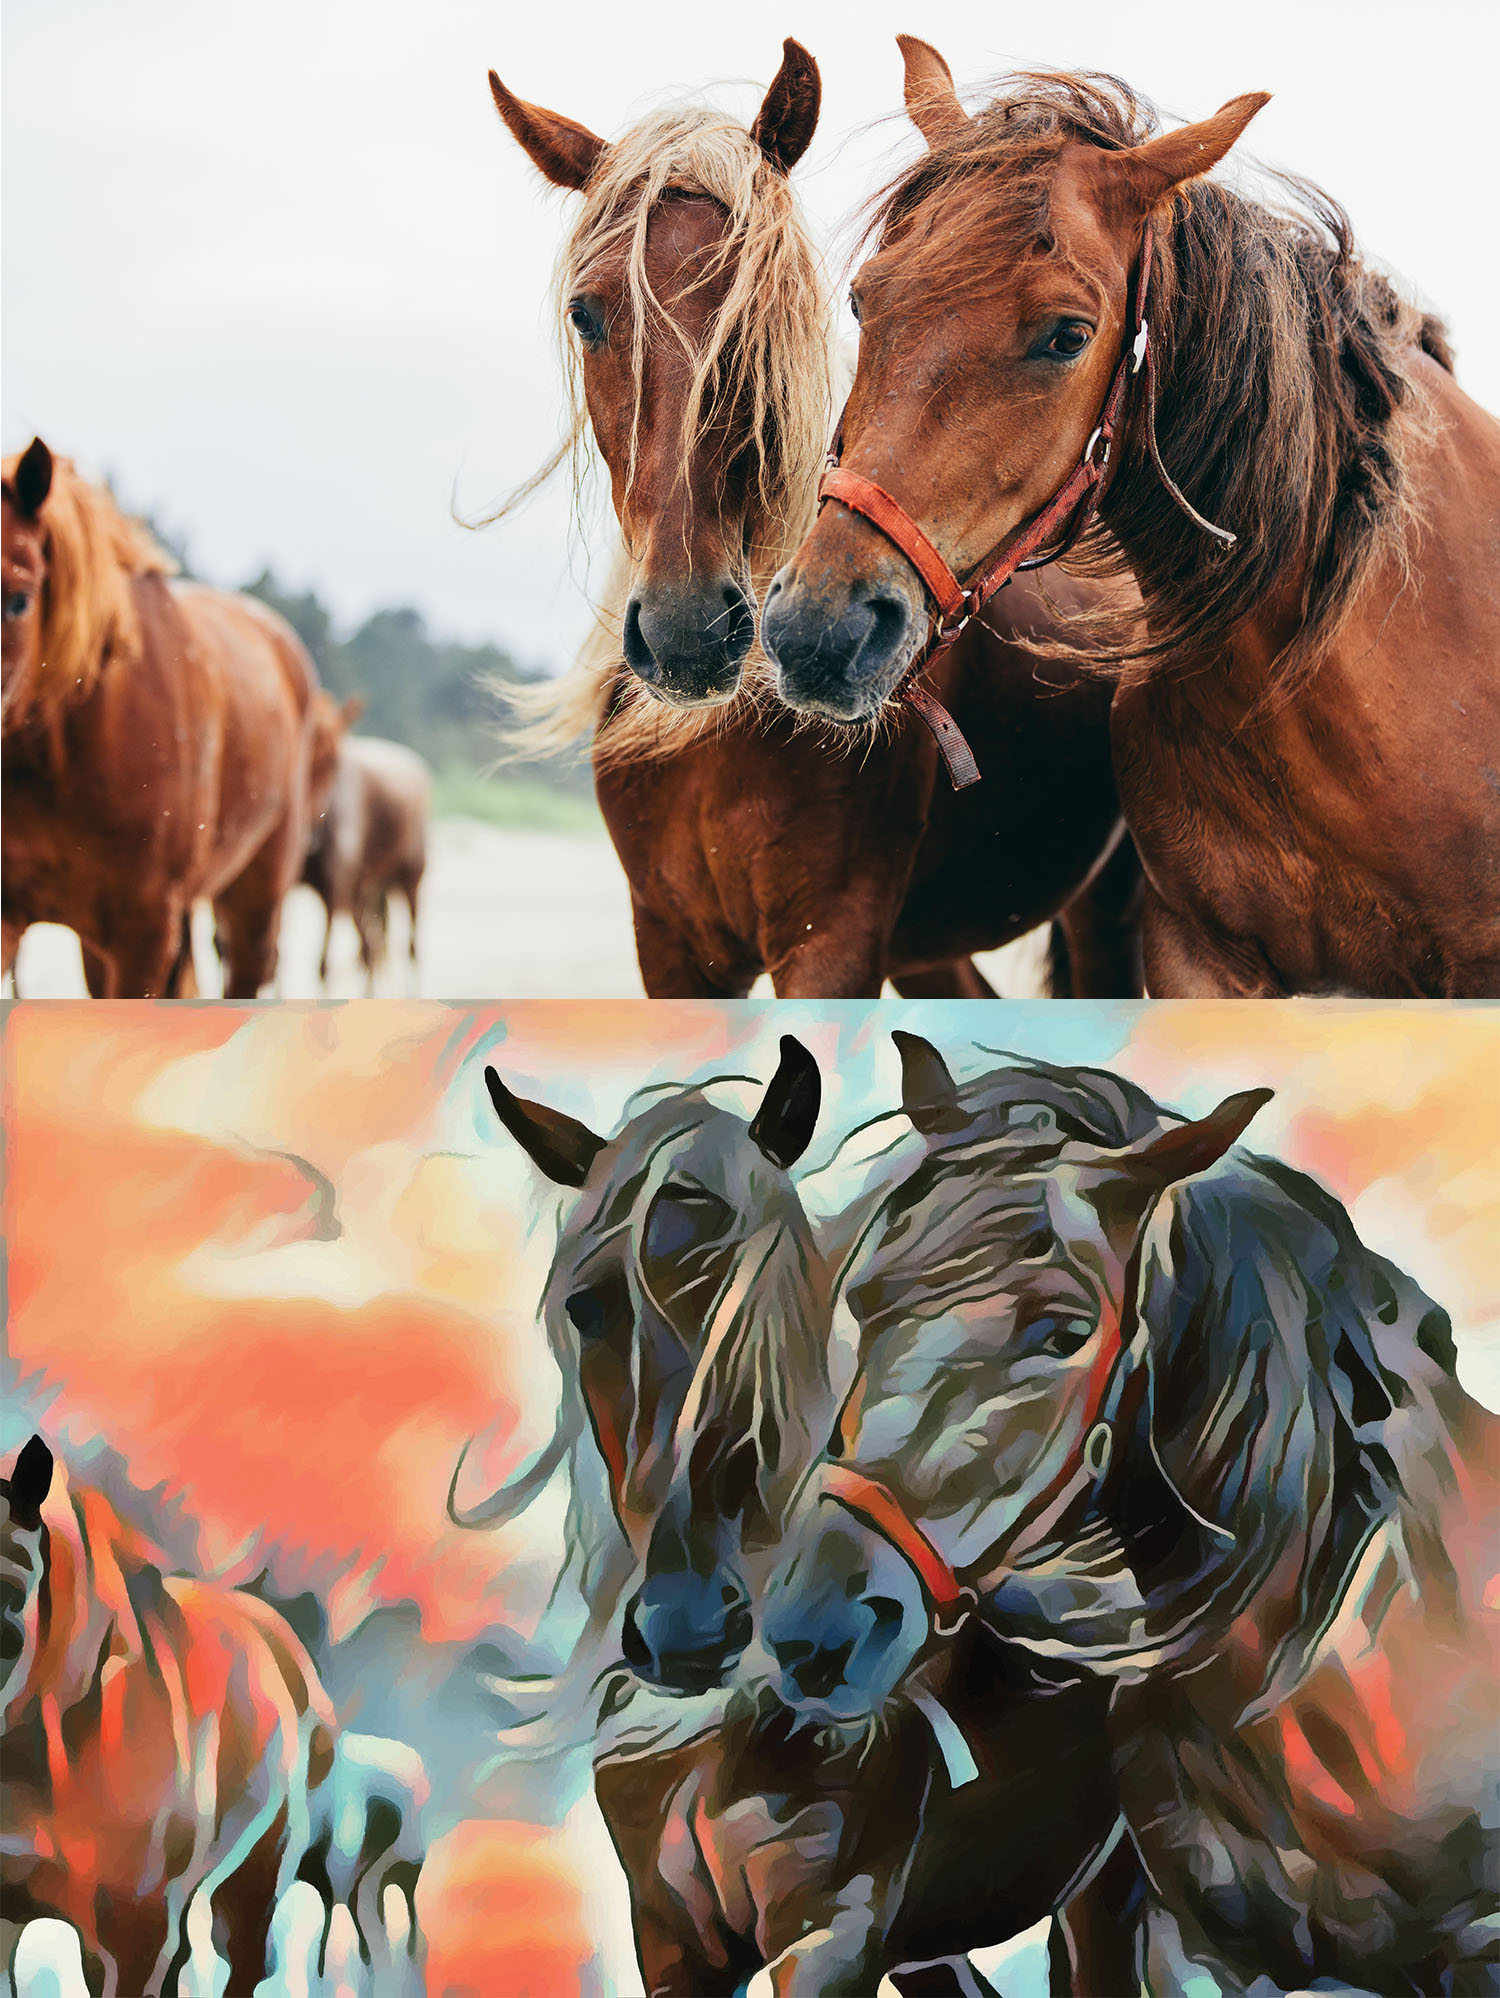 Before and after stylized image of two horses with their faces close together